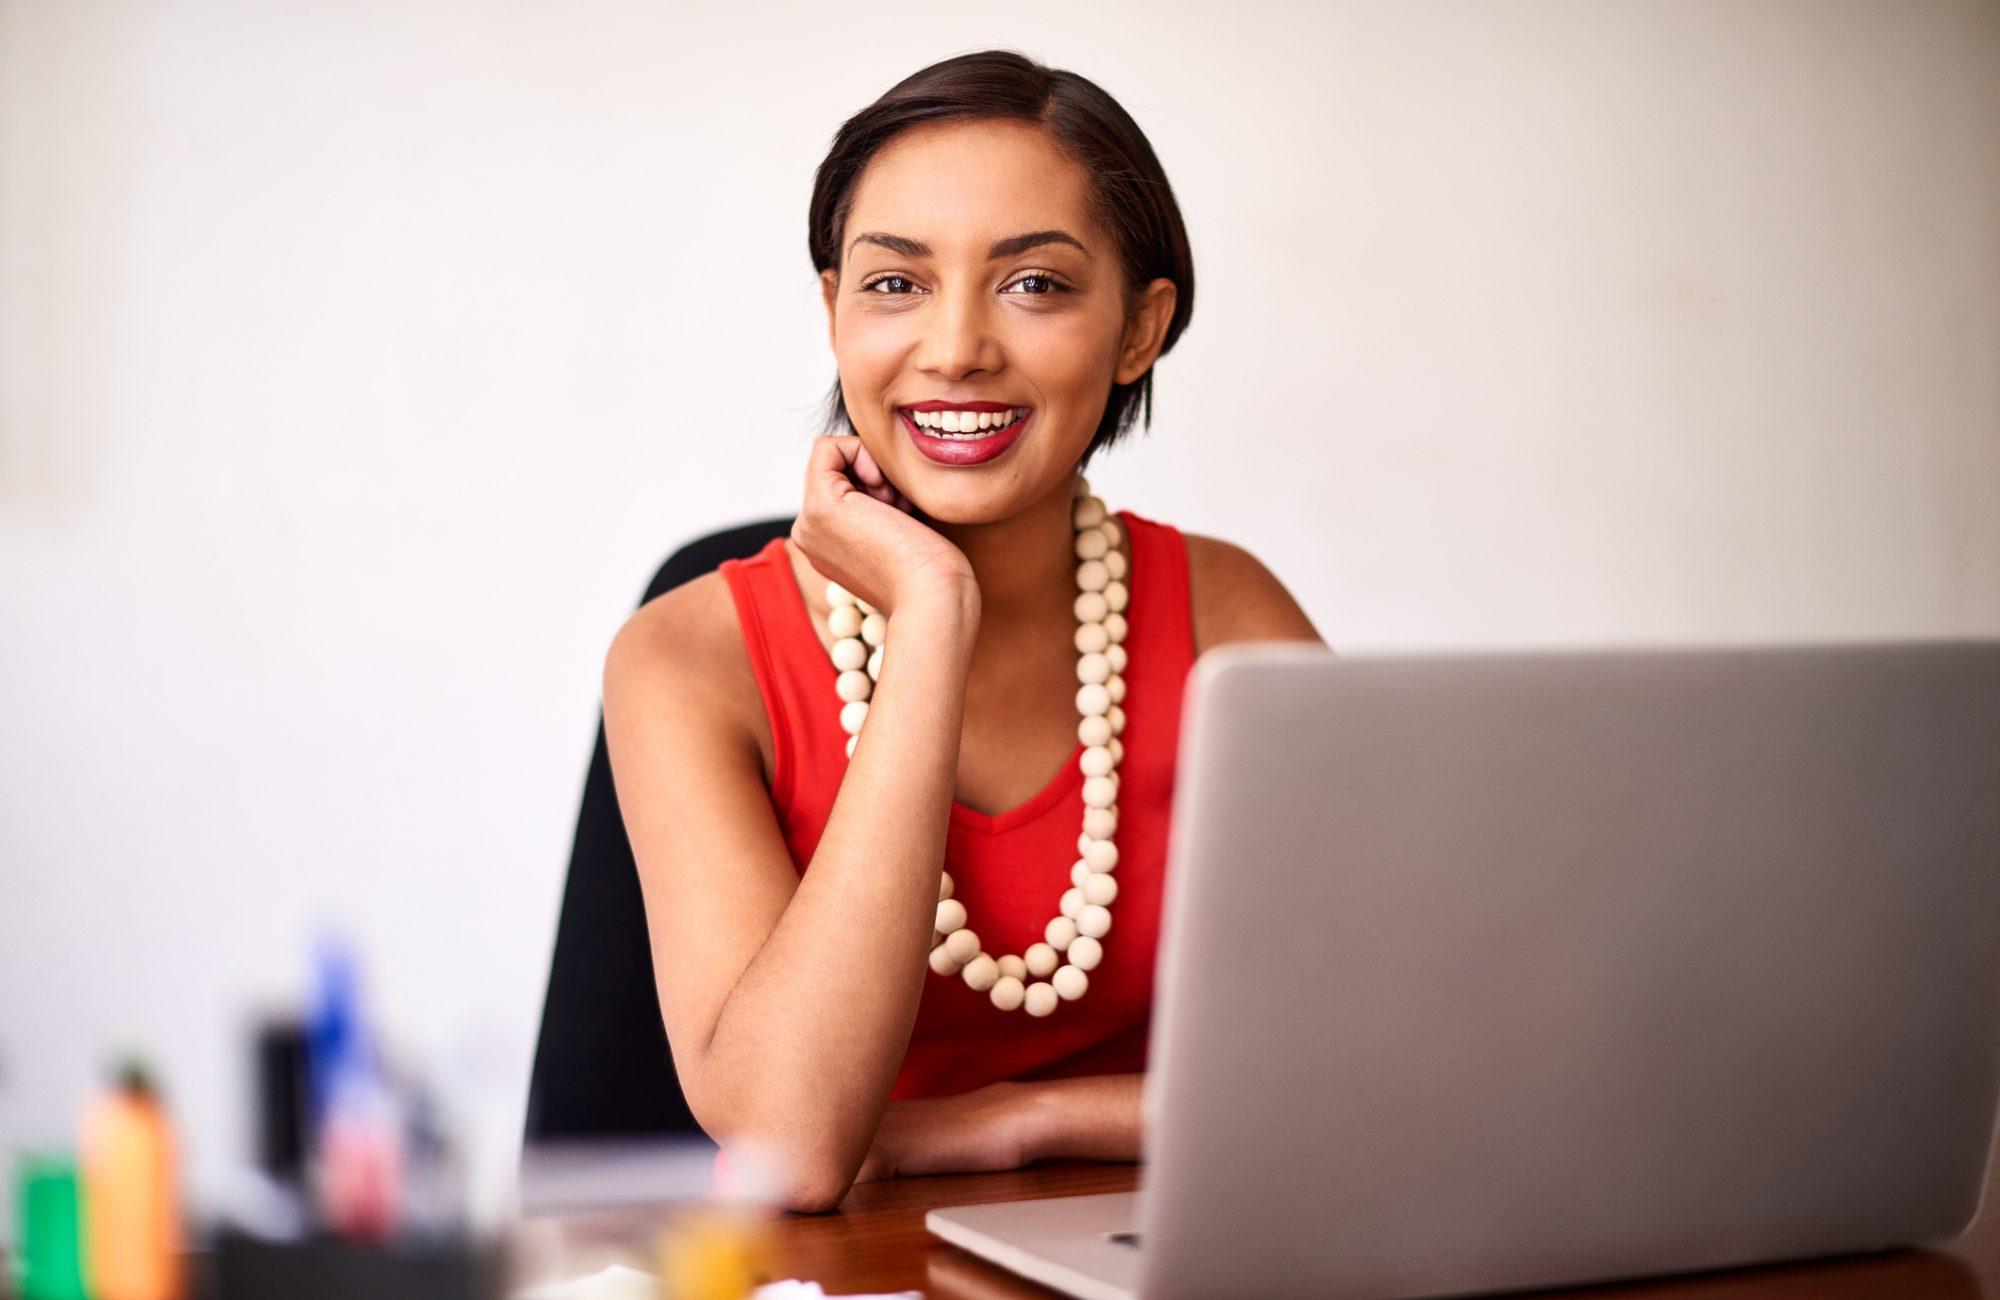 Portrait of a young woman working on a laptop in an office